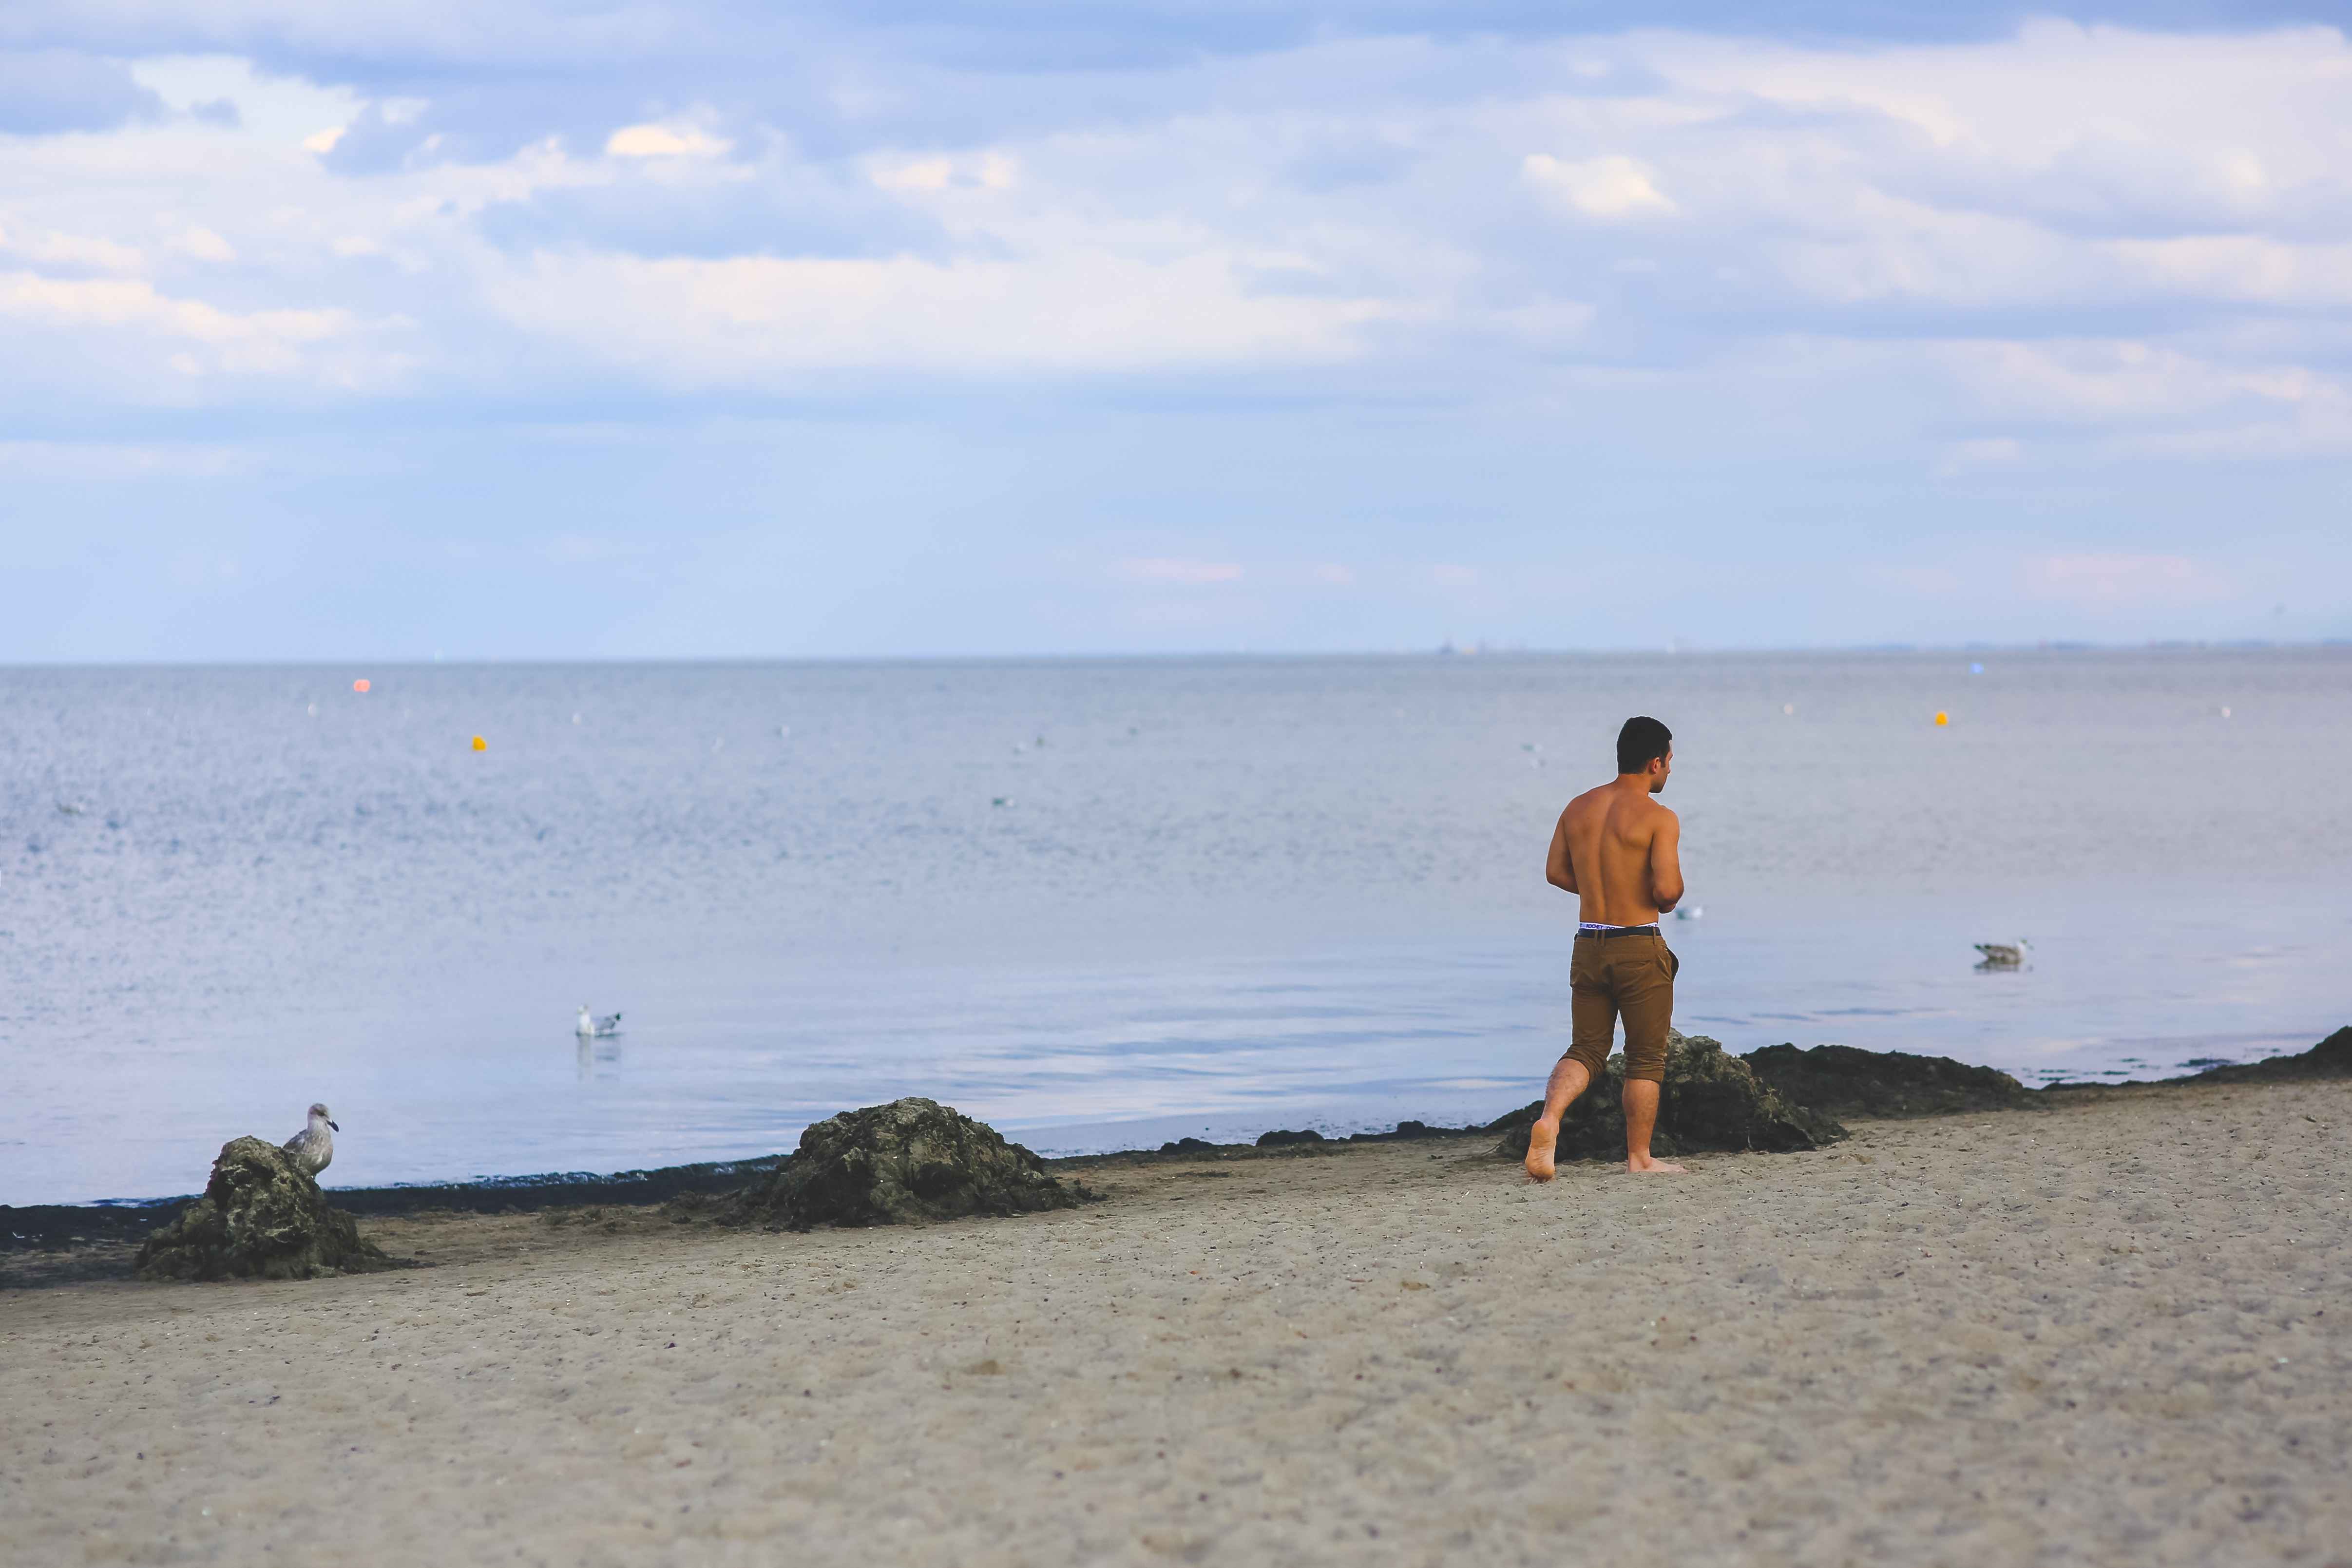 Young man walking on sand beach photo